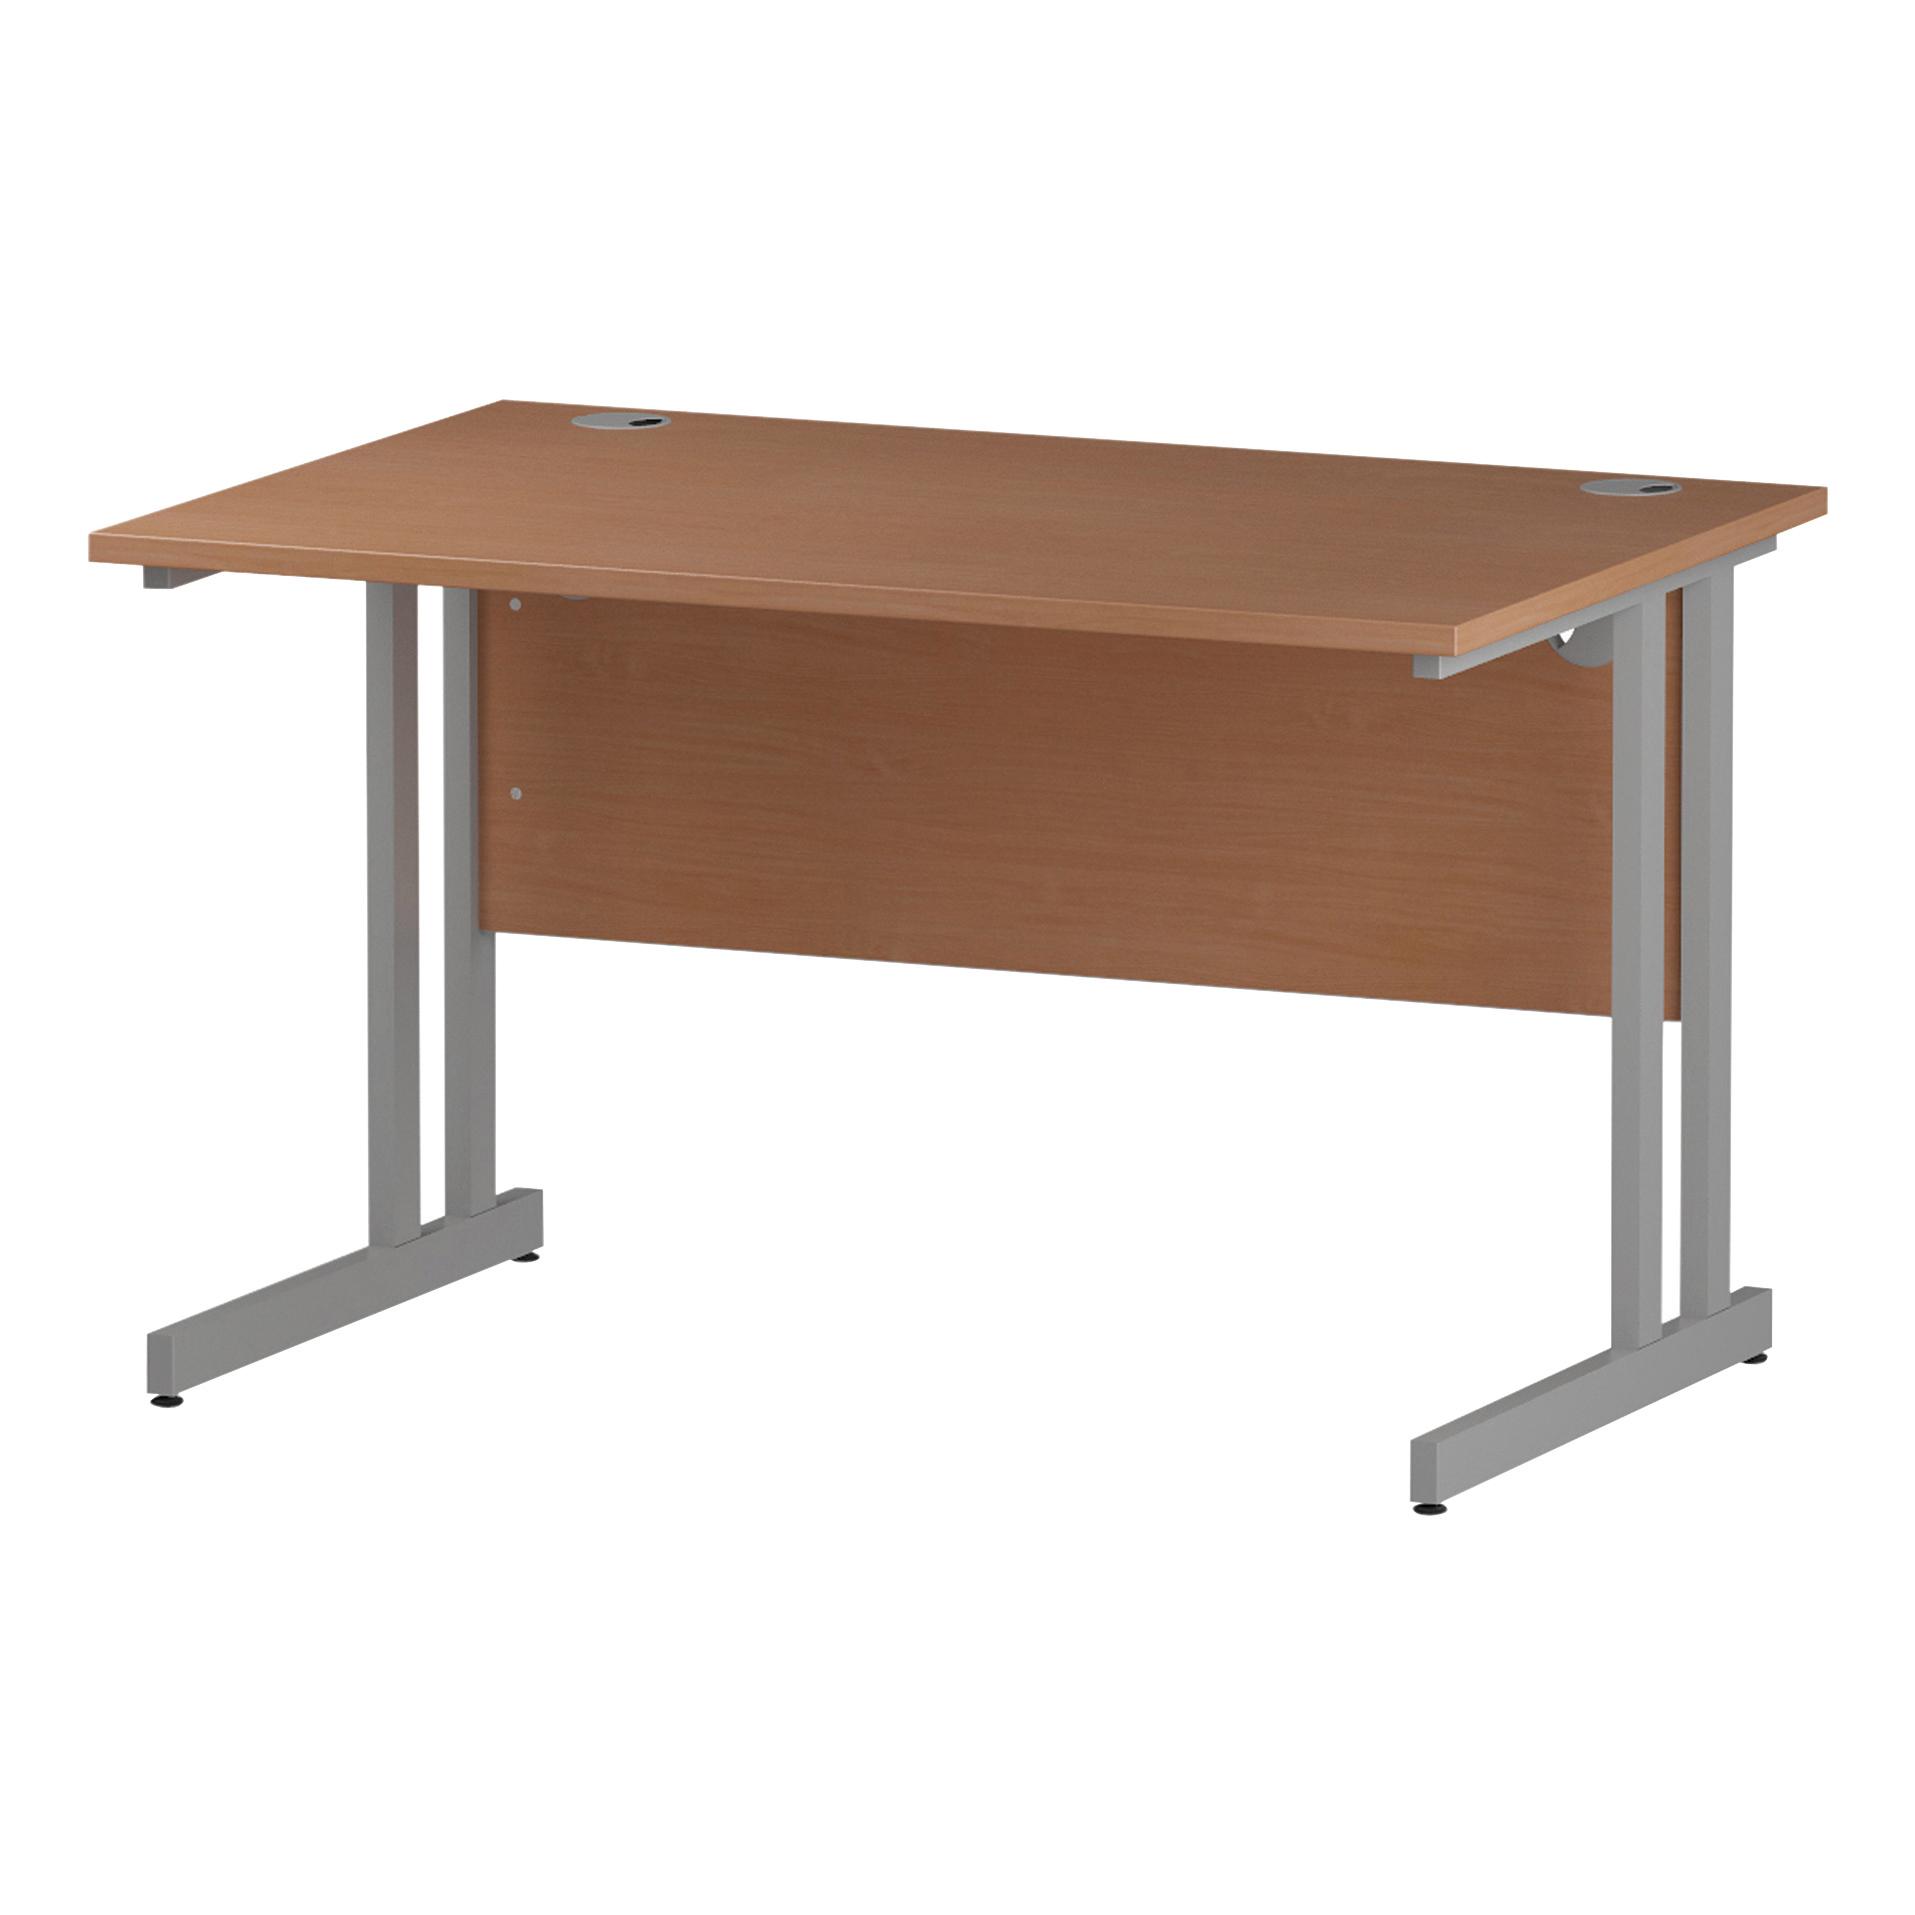 Trexus Rectangular Desk Cantilever Leg 1200mm Beech